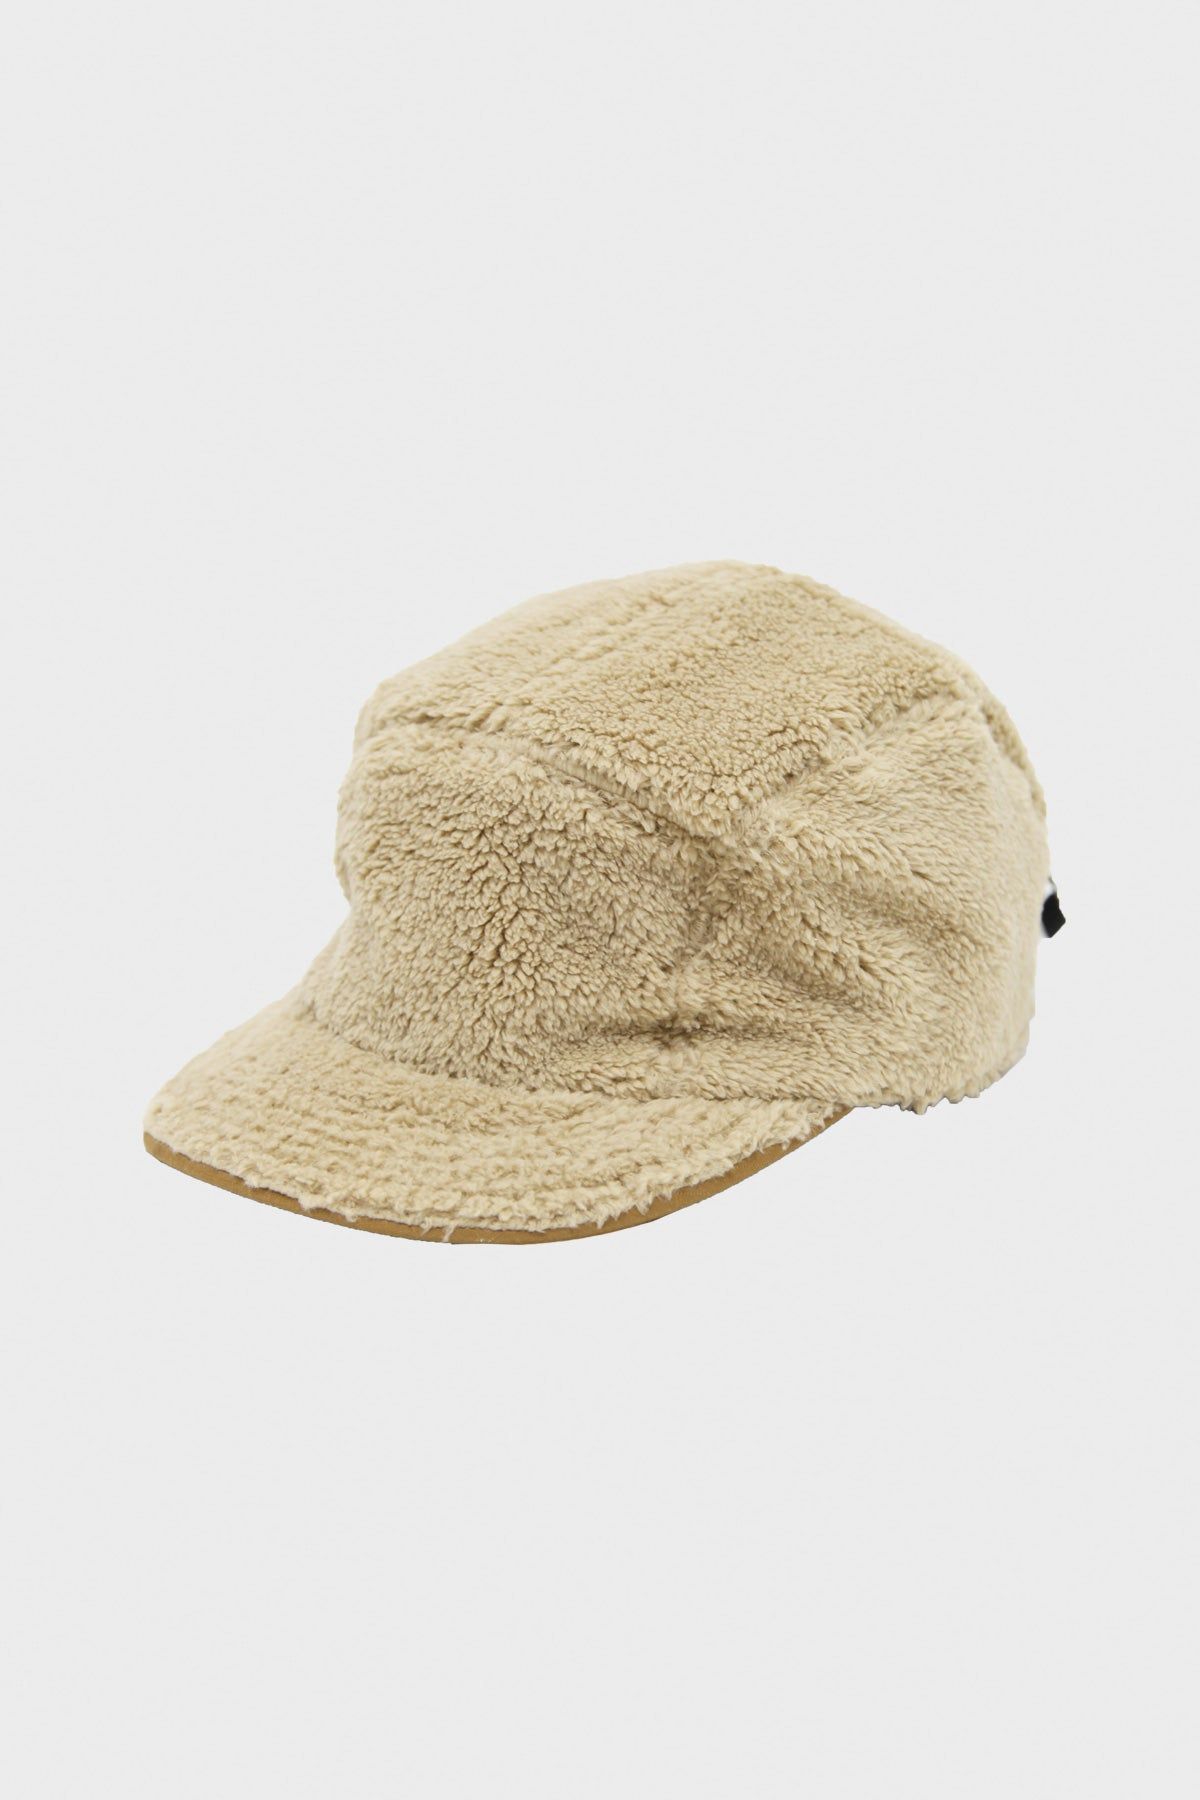 Cableami - Boa Fleece Cap with Drawcord - Beige - Canoe Club